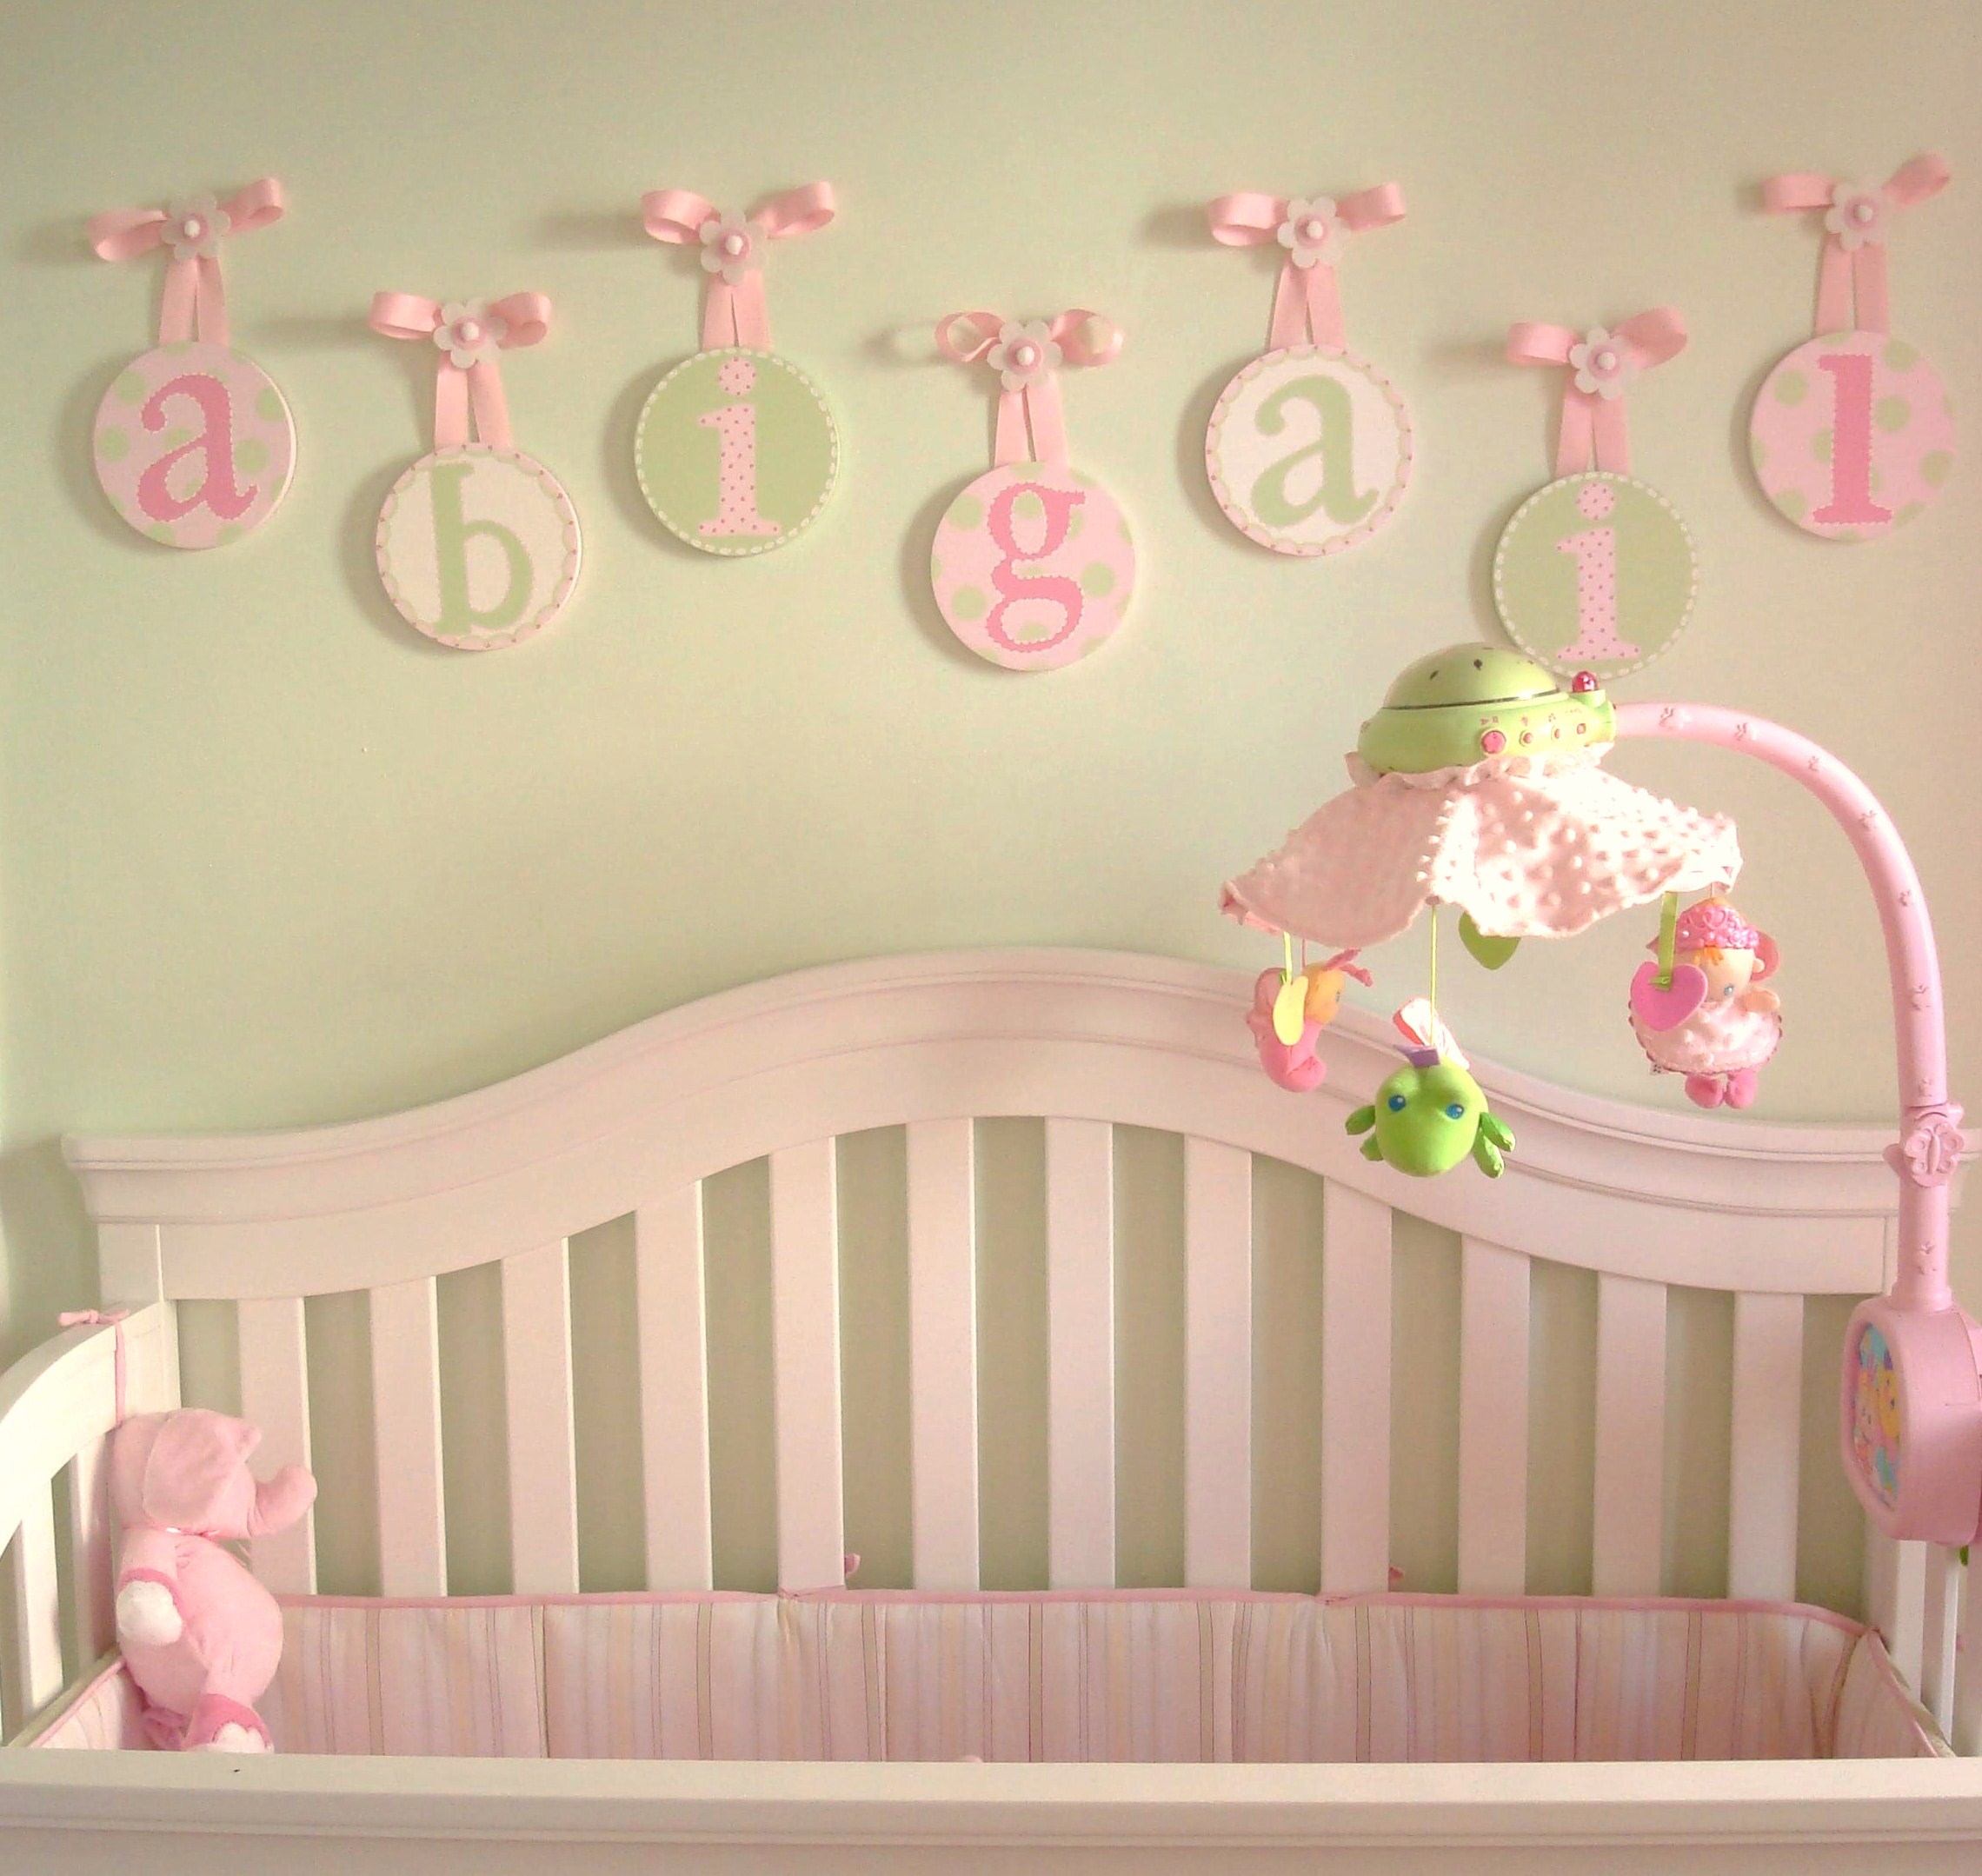 Hanging letters for Baby girl wall decoration